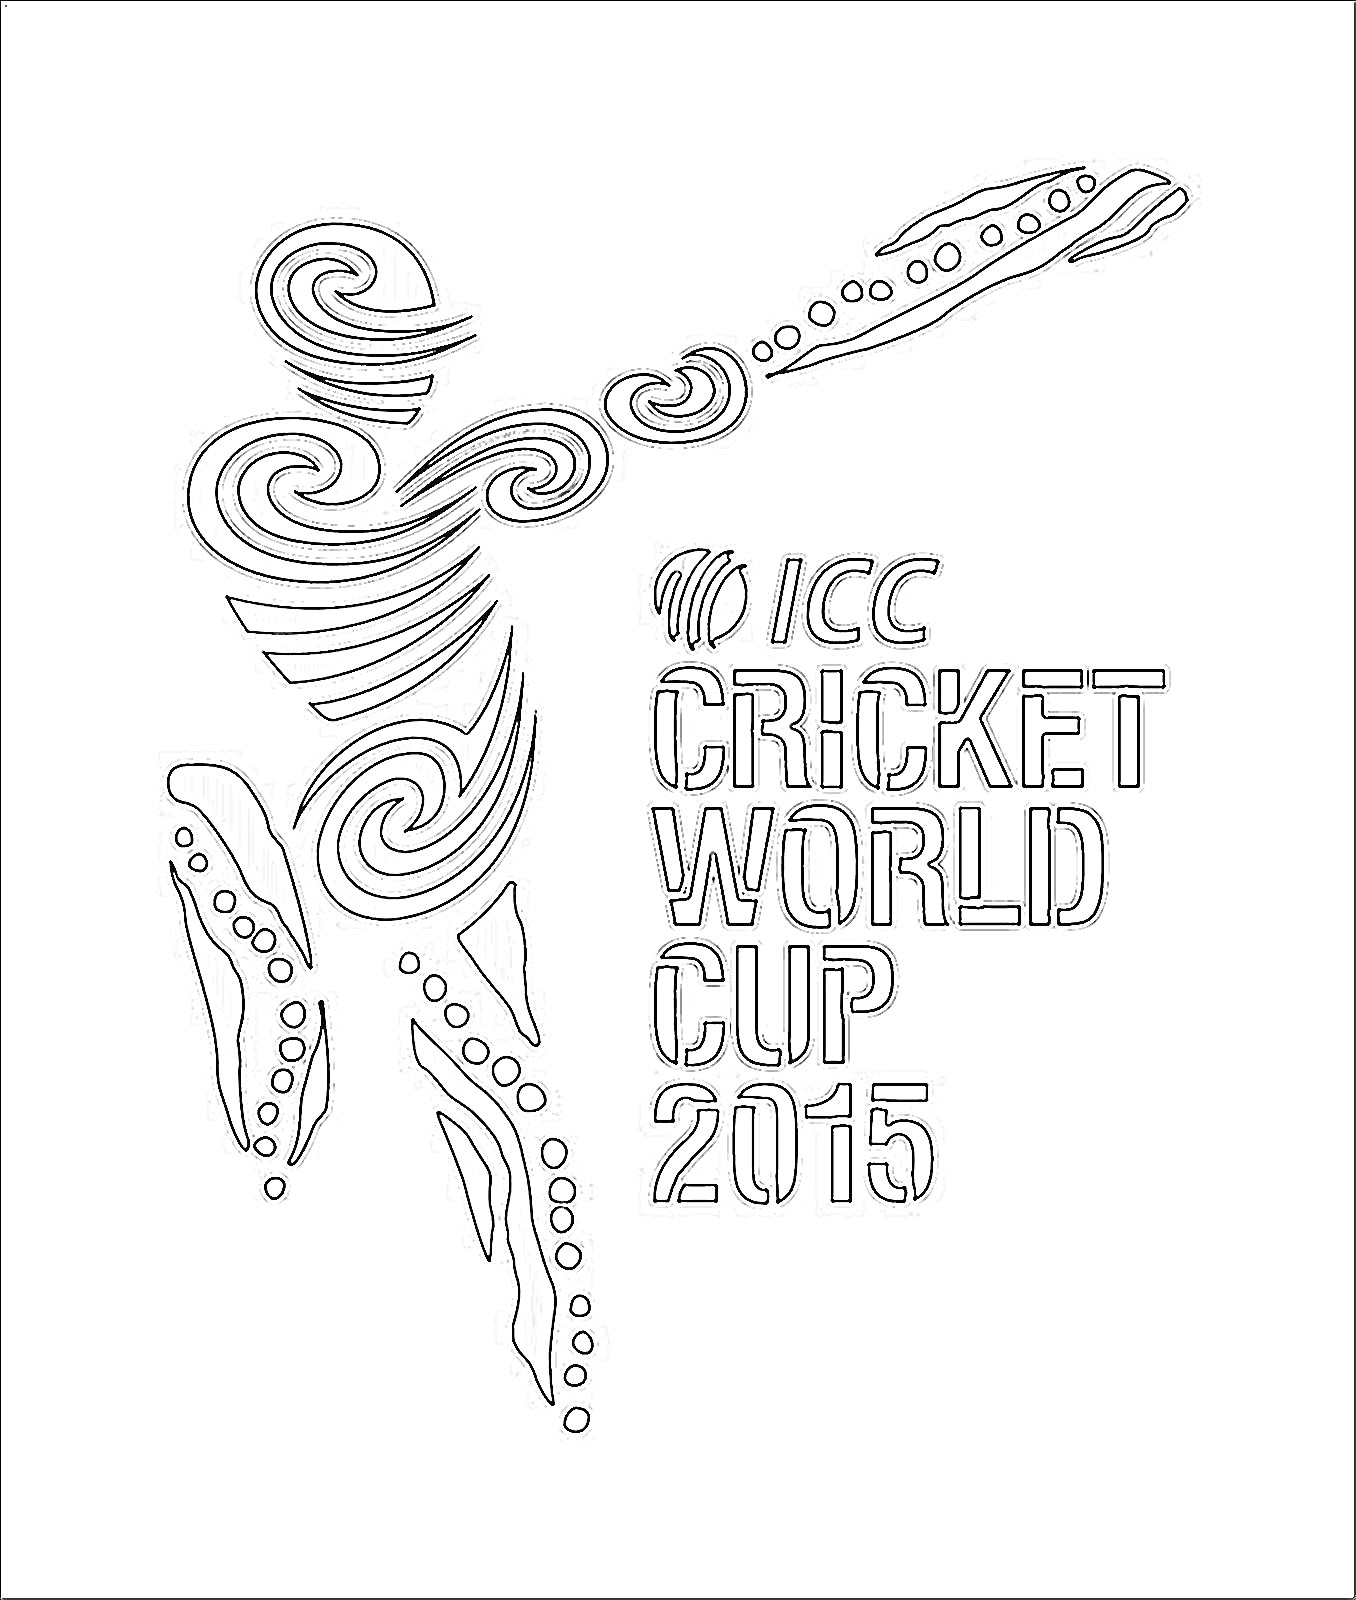 Cricket World Cup 2015 Logo Coloring Kids Coloring Kids